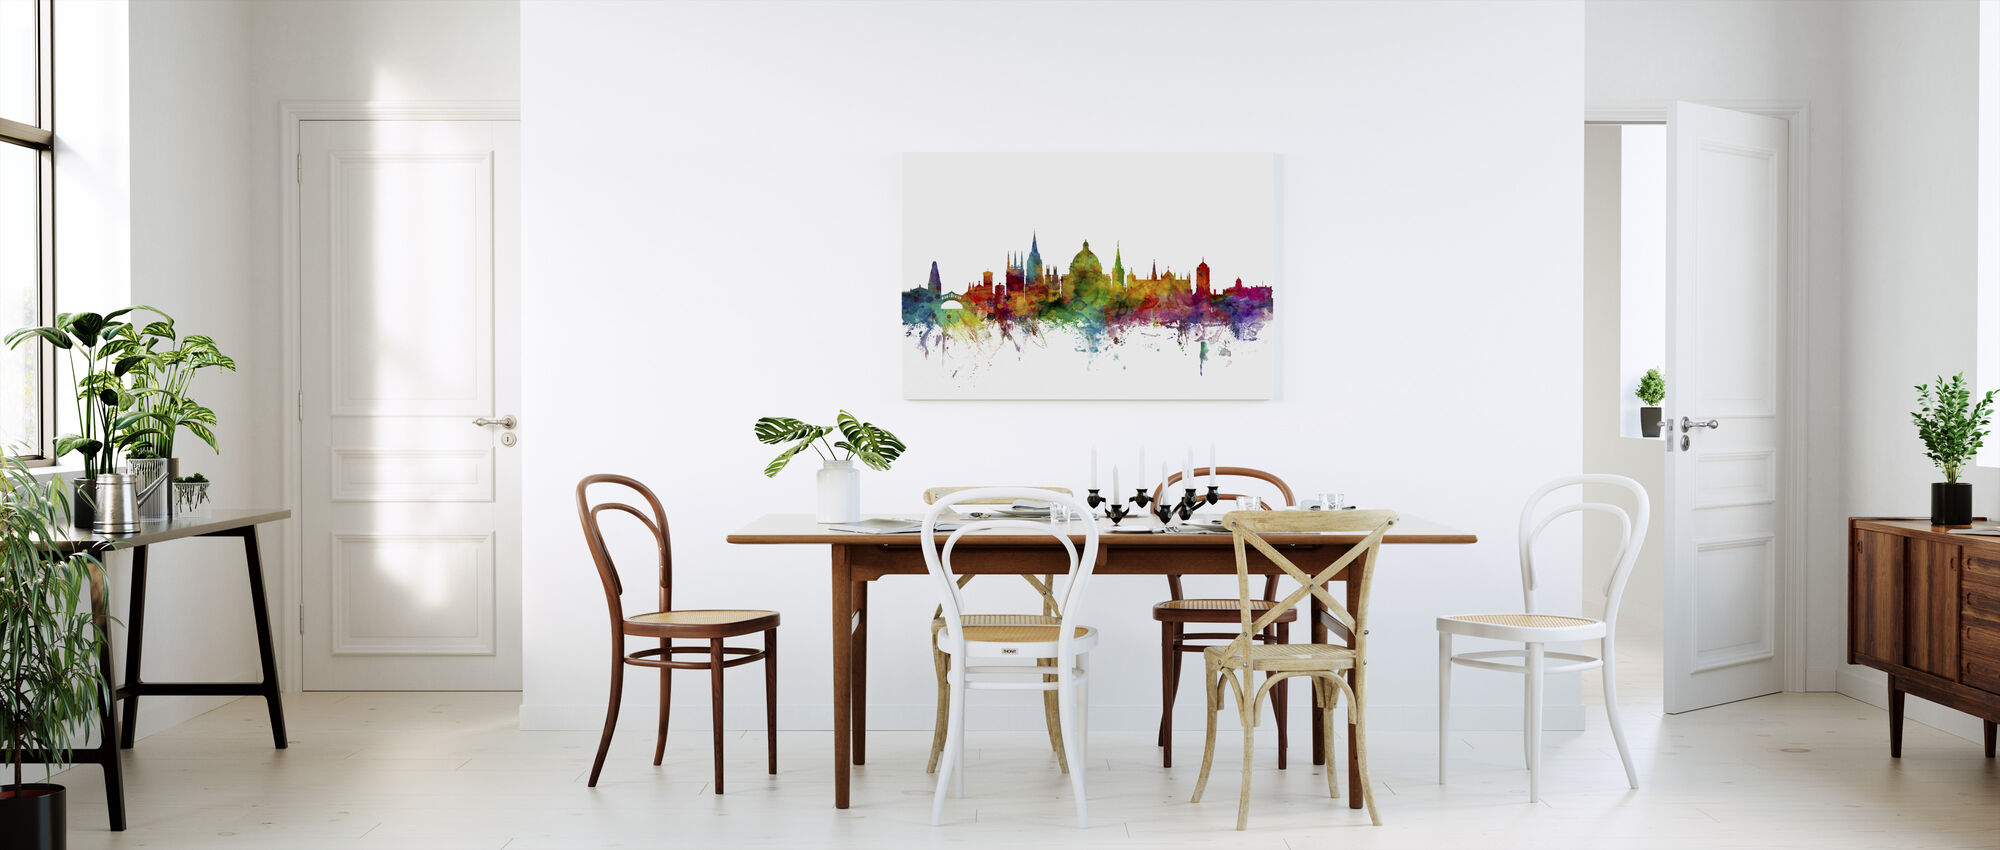 Oxford Skyline - Canvas print - Kitchen